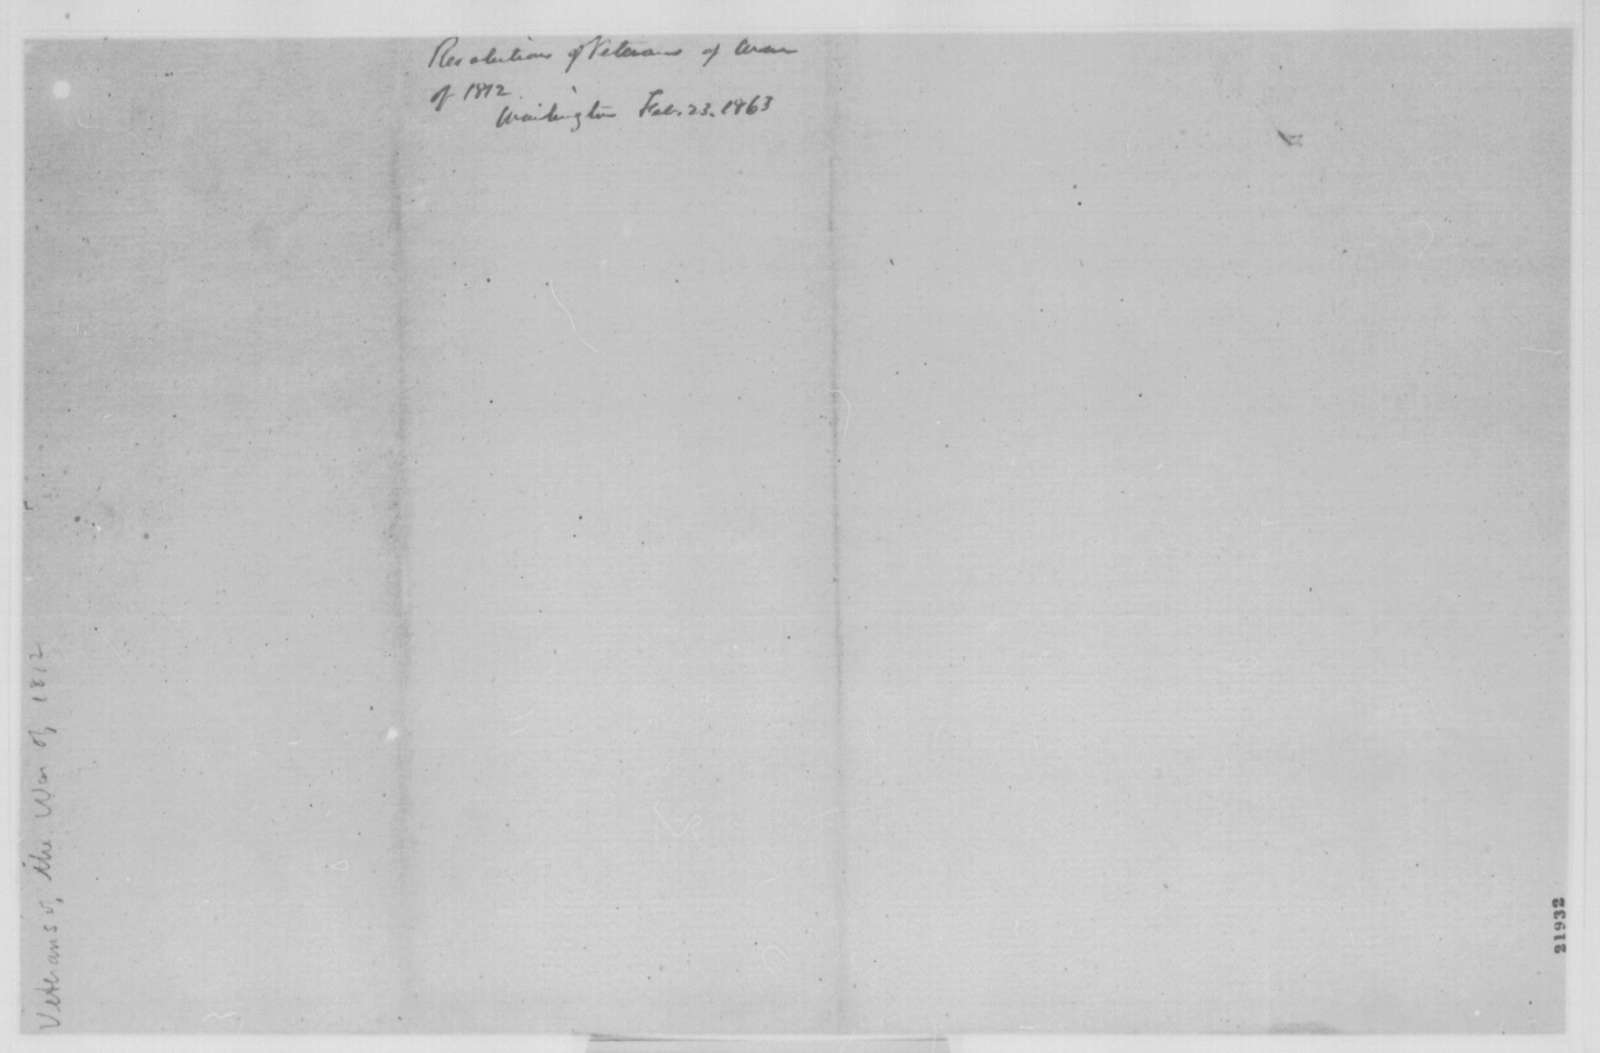 Veterans of War of 1812 to Abraham Lincoln, Monday, February 23, 1863  (Resolutions)